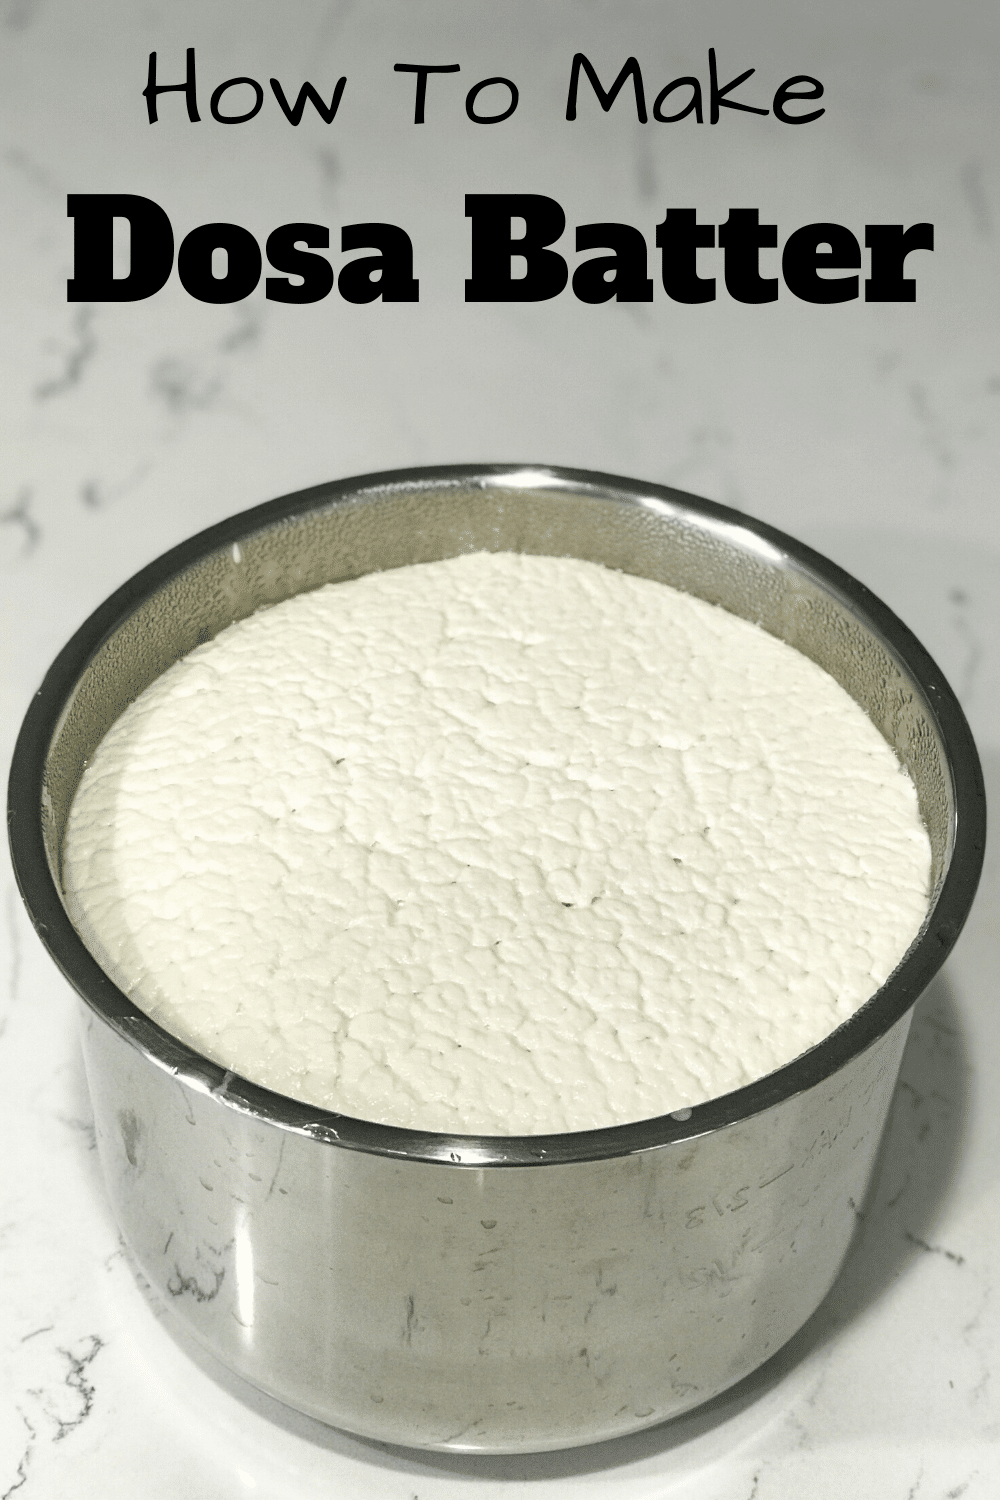 Dosa and Batter